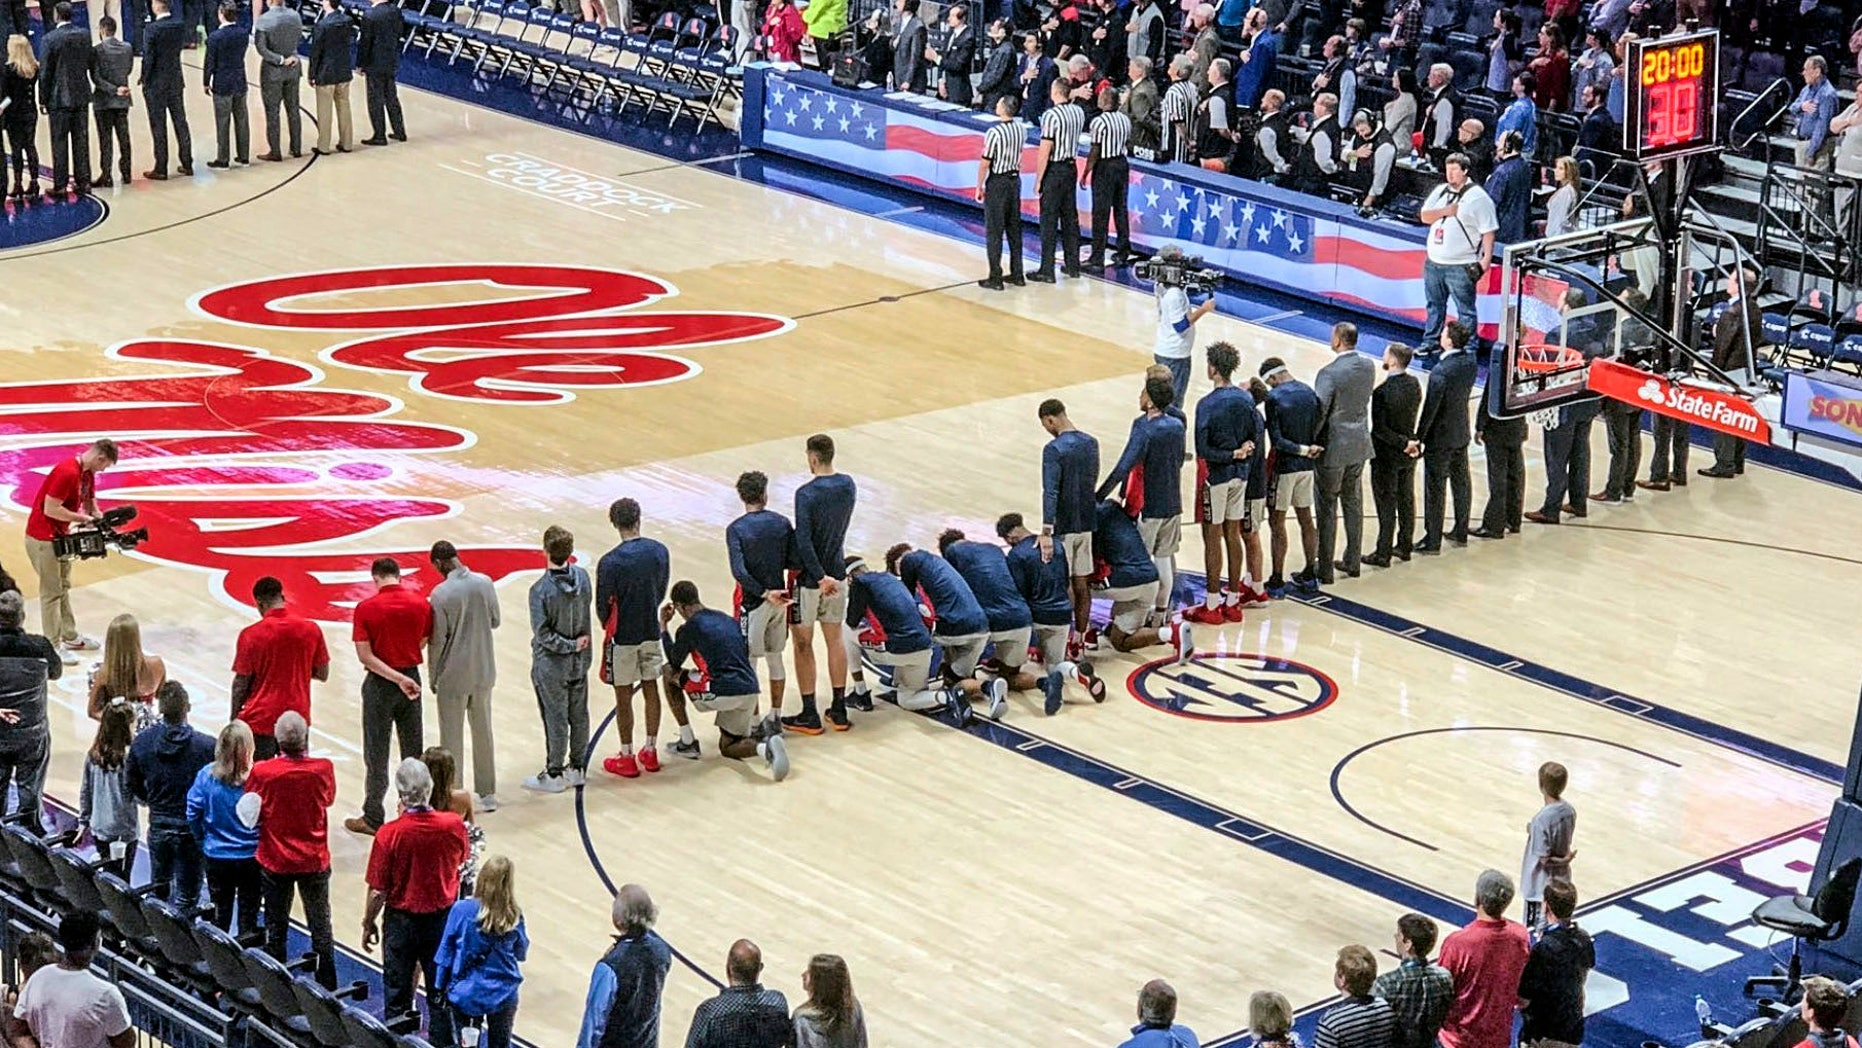 Several Mississippi college athletes kneel during anthem over a nearby Confederacy rally